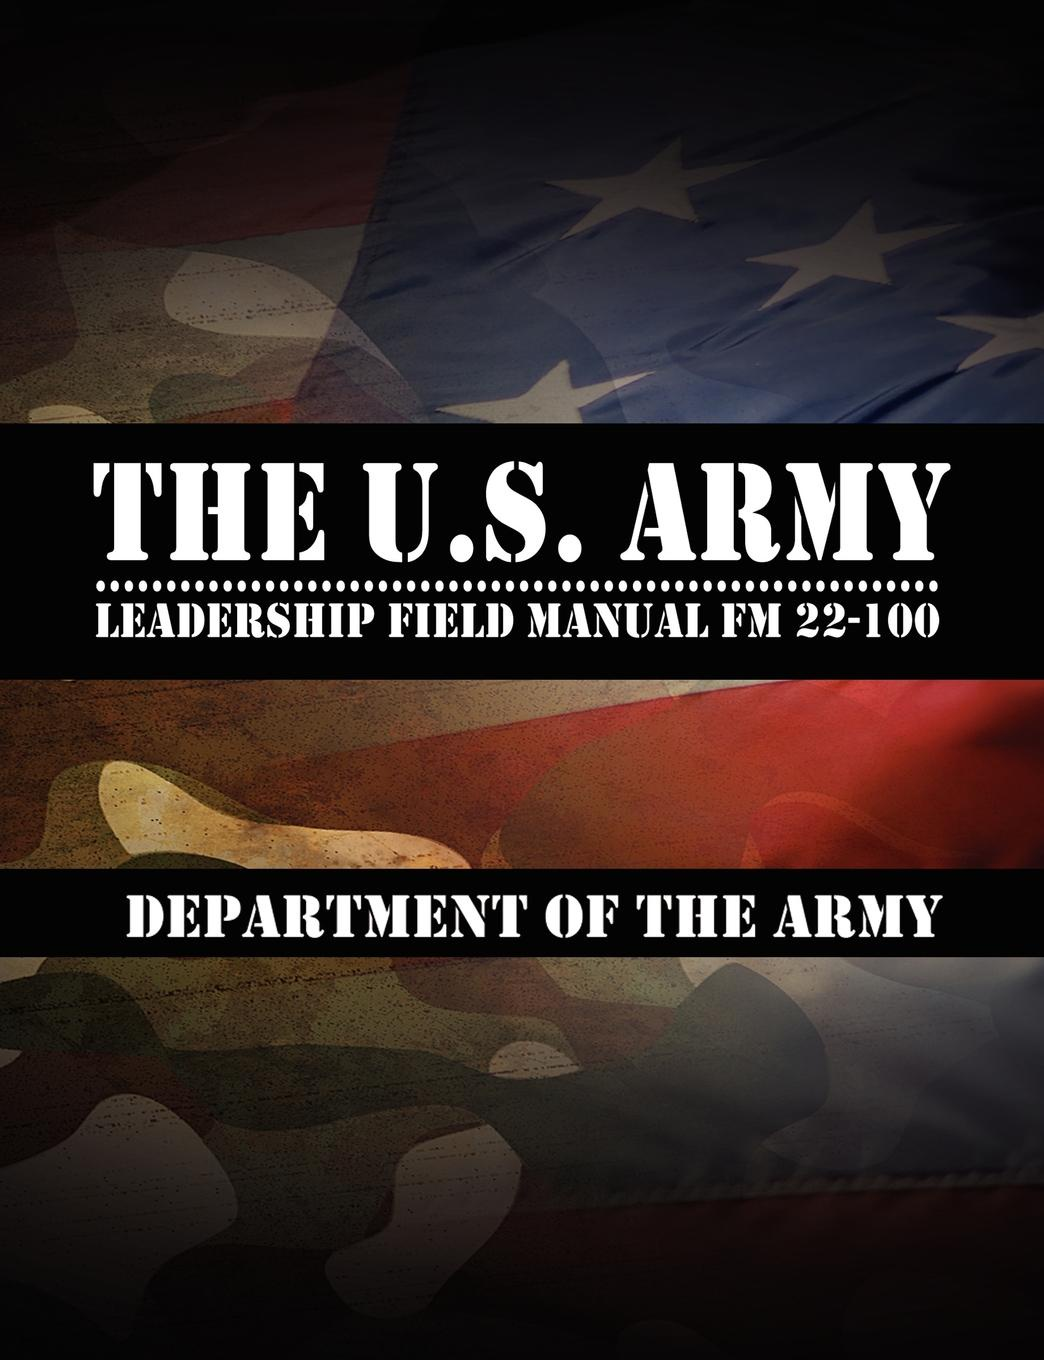 Leadership Center for Army and Us Army The U.S. Army Leadership Field Manual FM 22-100 army of lovers army of lovers big battle of egos